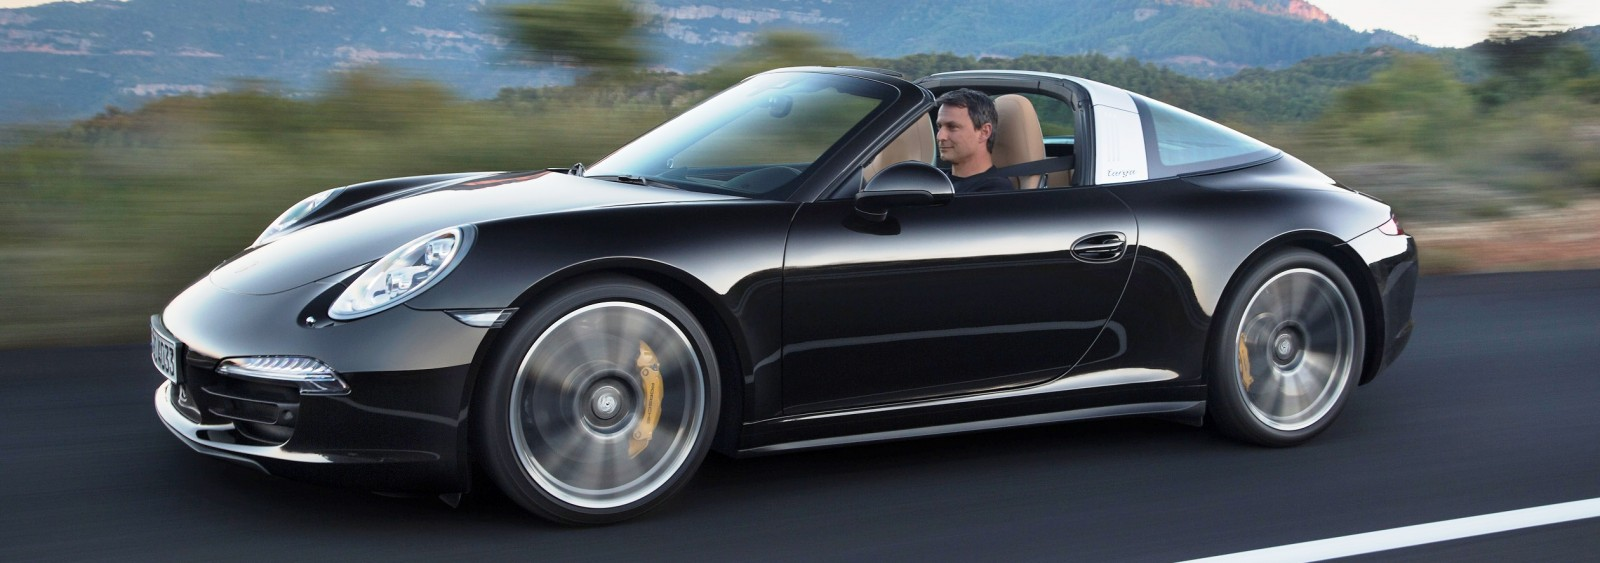 2014 Porsche 911 Targa4 and Targa4S - Roof Animations of 400HP Surf 'n Turf Supercar 1